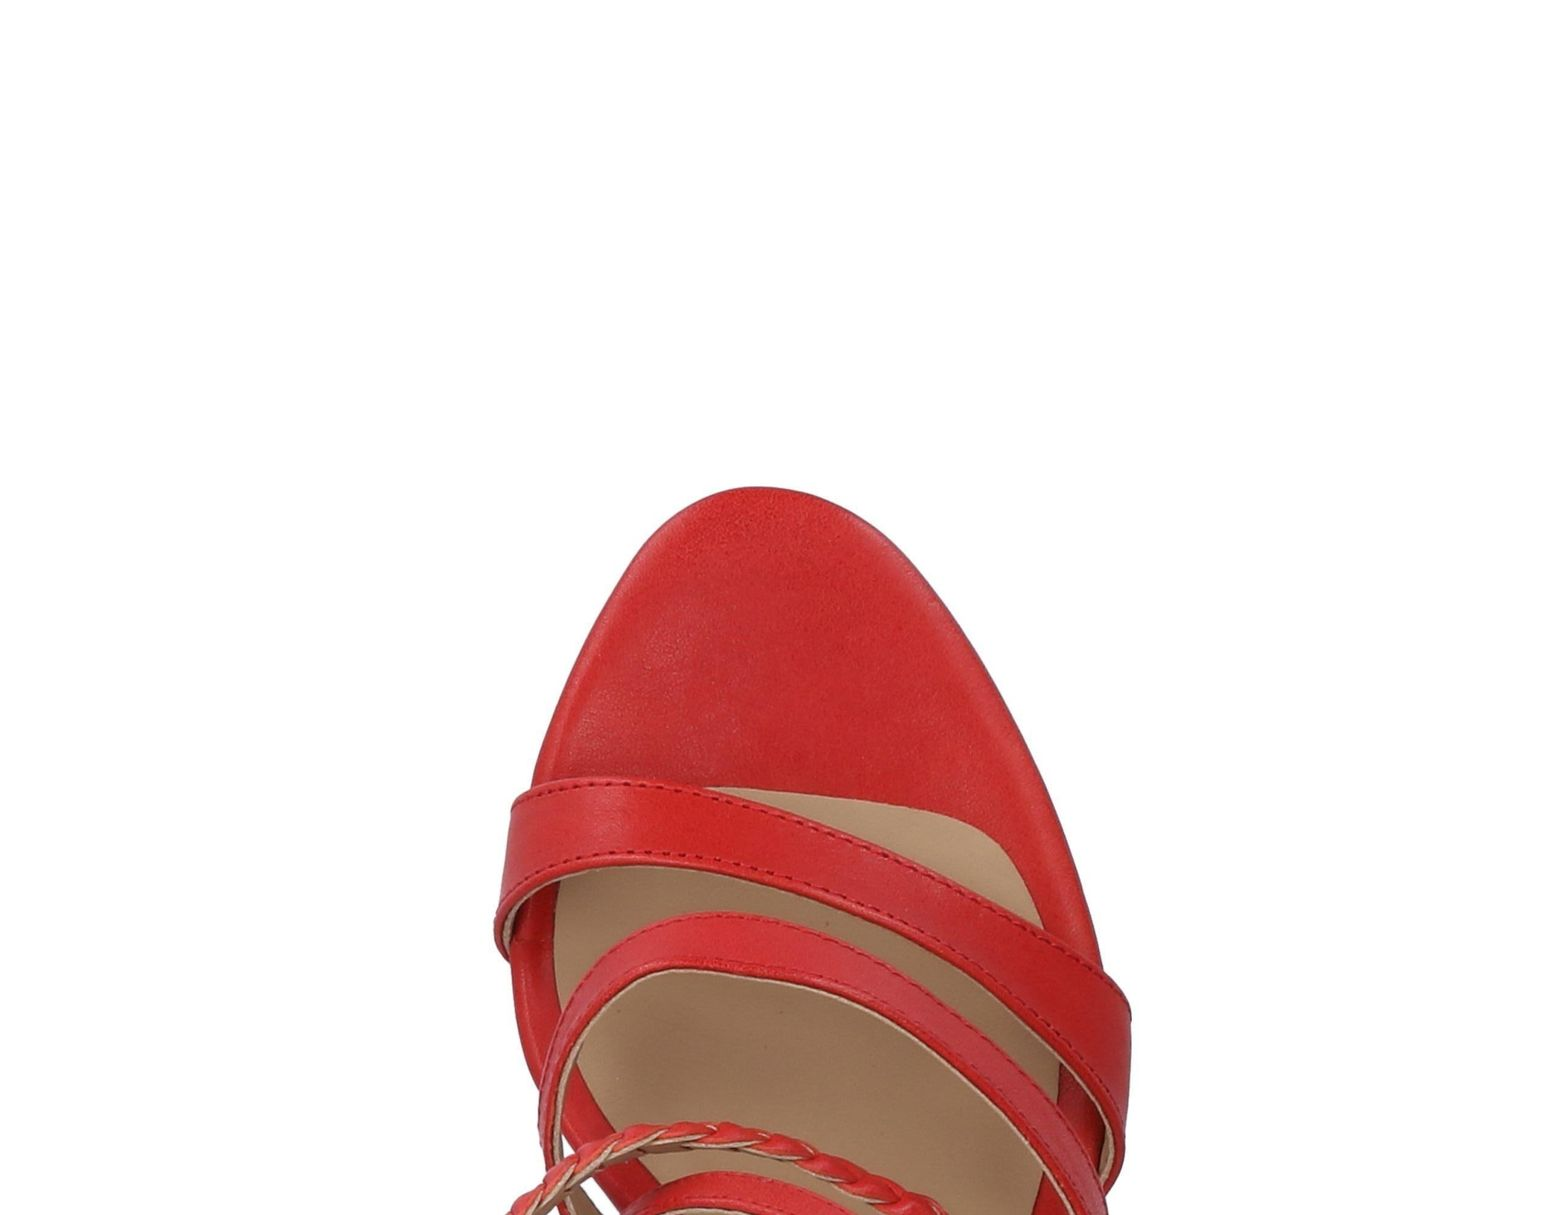 N Cmade Lyst Sandals Hand By Red In D Quzvgpjlsm Nn80wOPkX